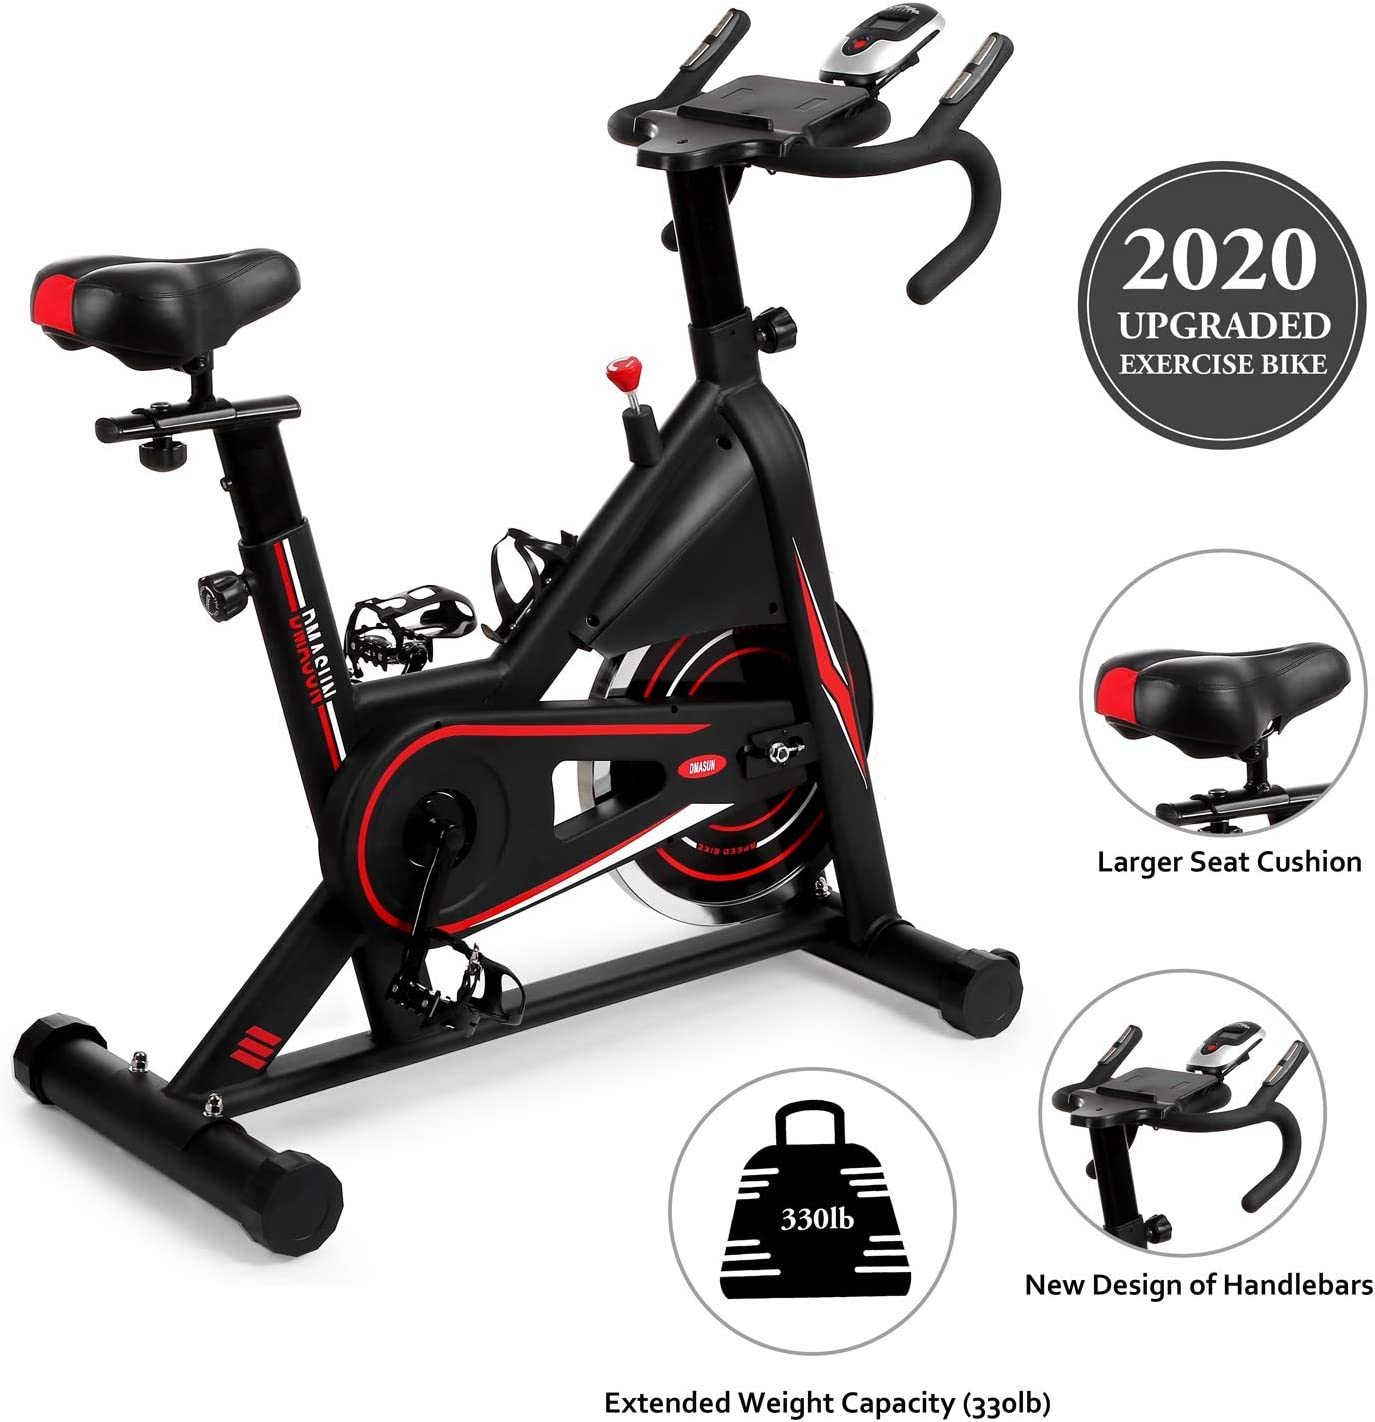 Best Exercise Bike Under 300 Reviewed 2020 - Expert's Guide 1